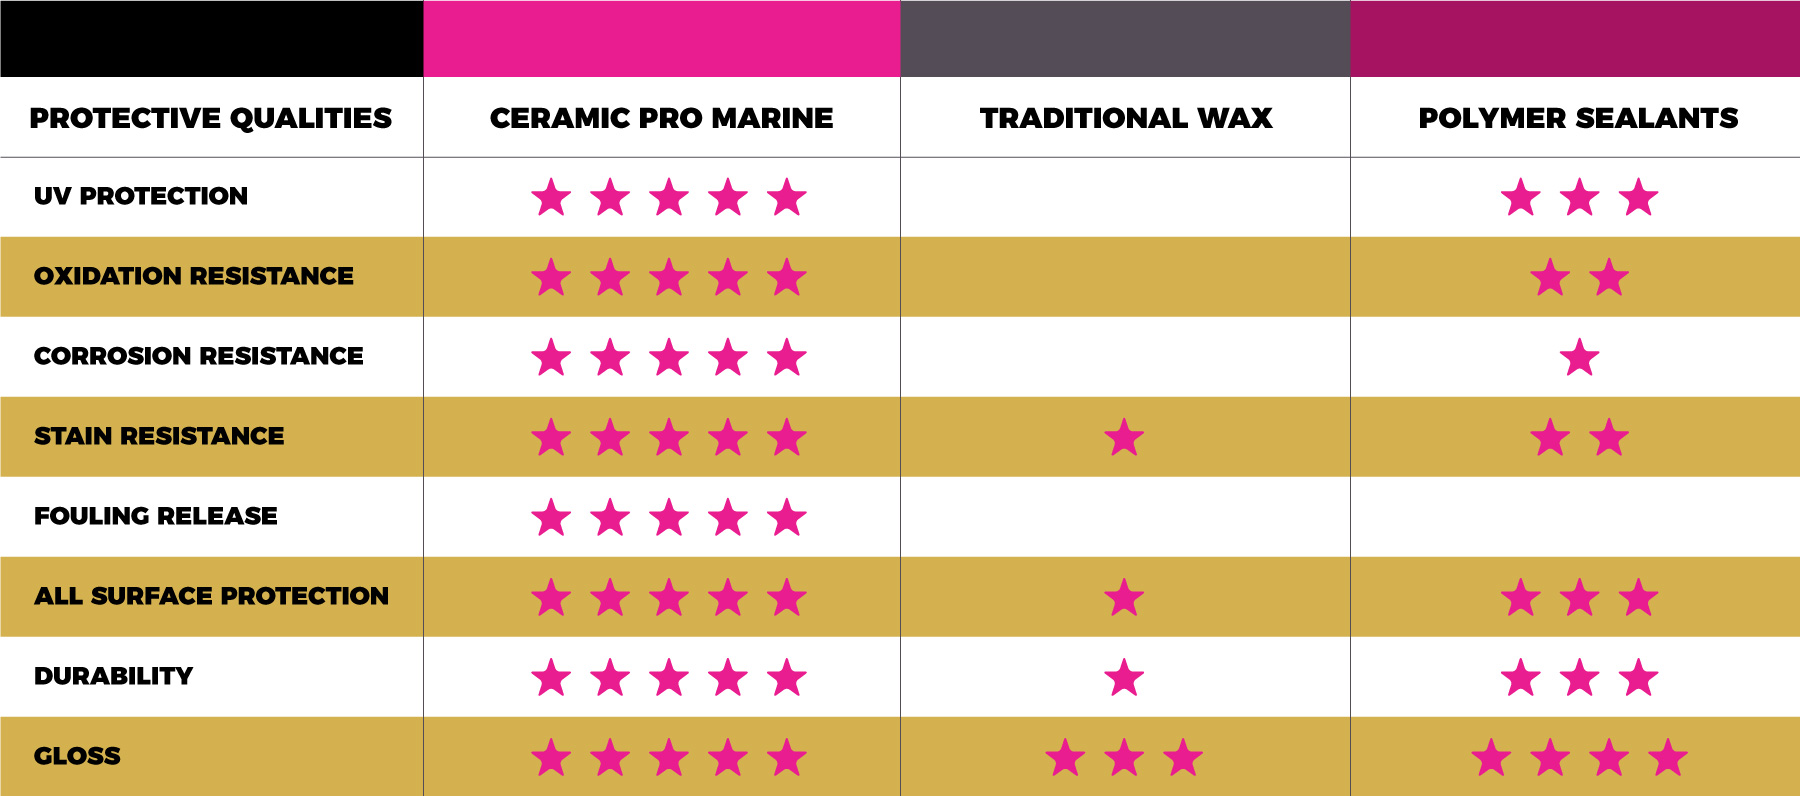 Ceramic Pro Marine Comparison